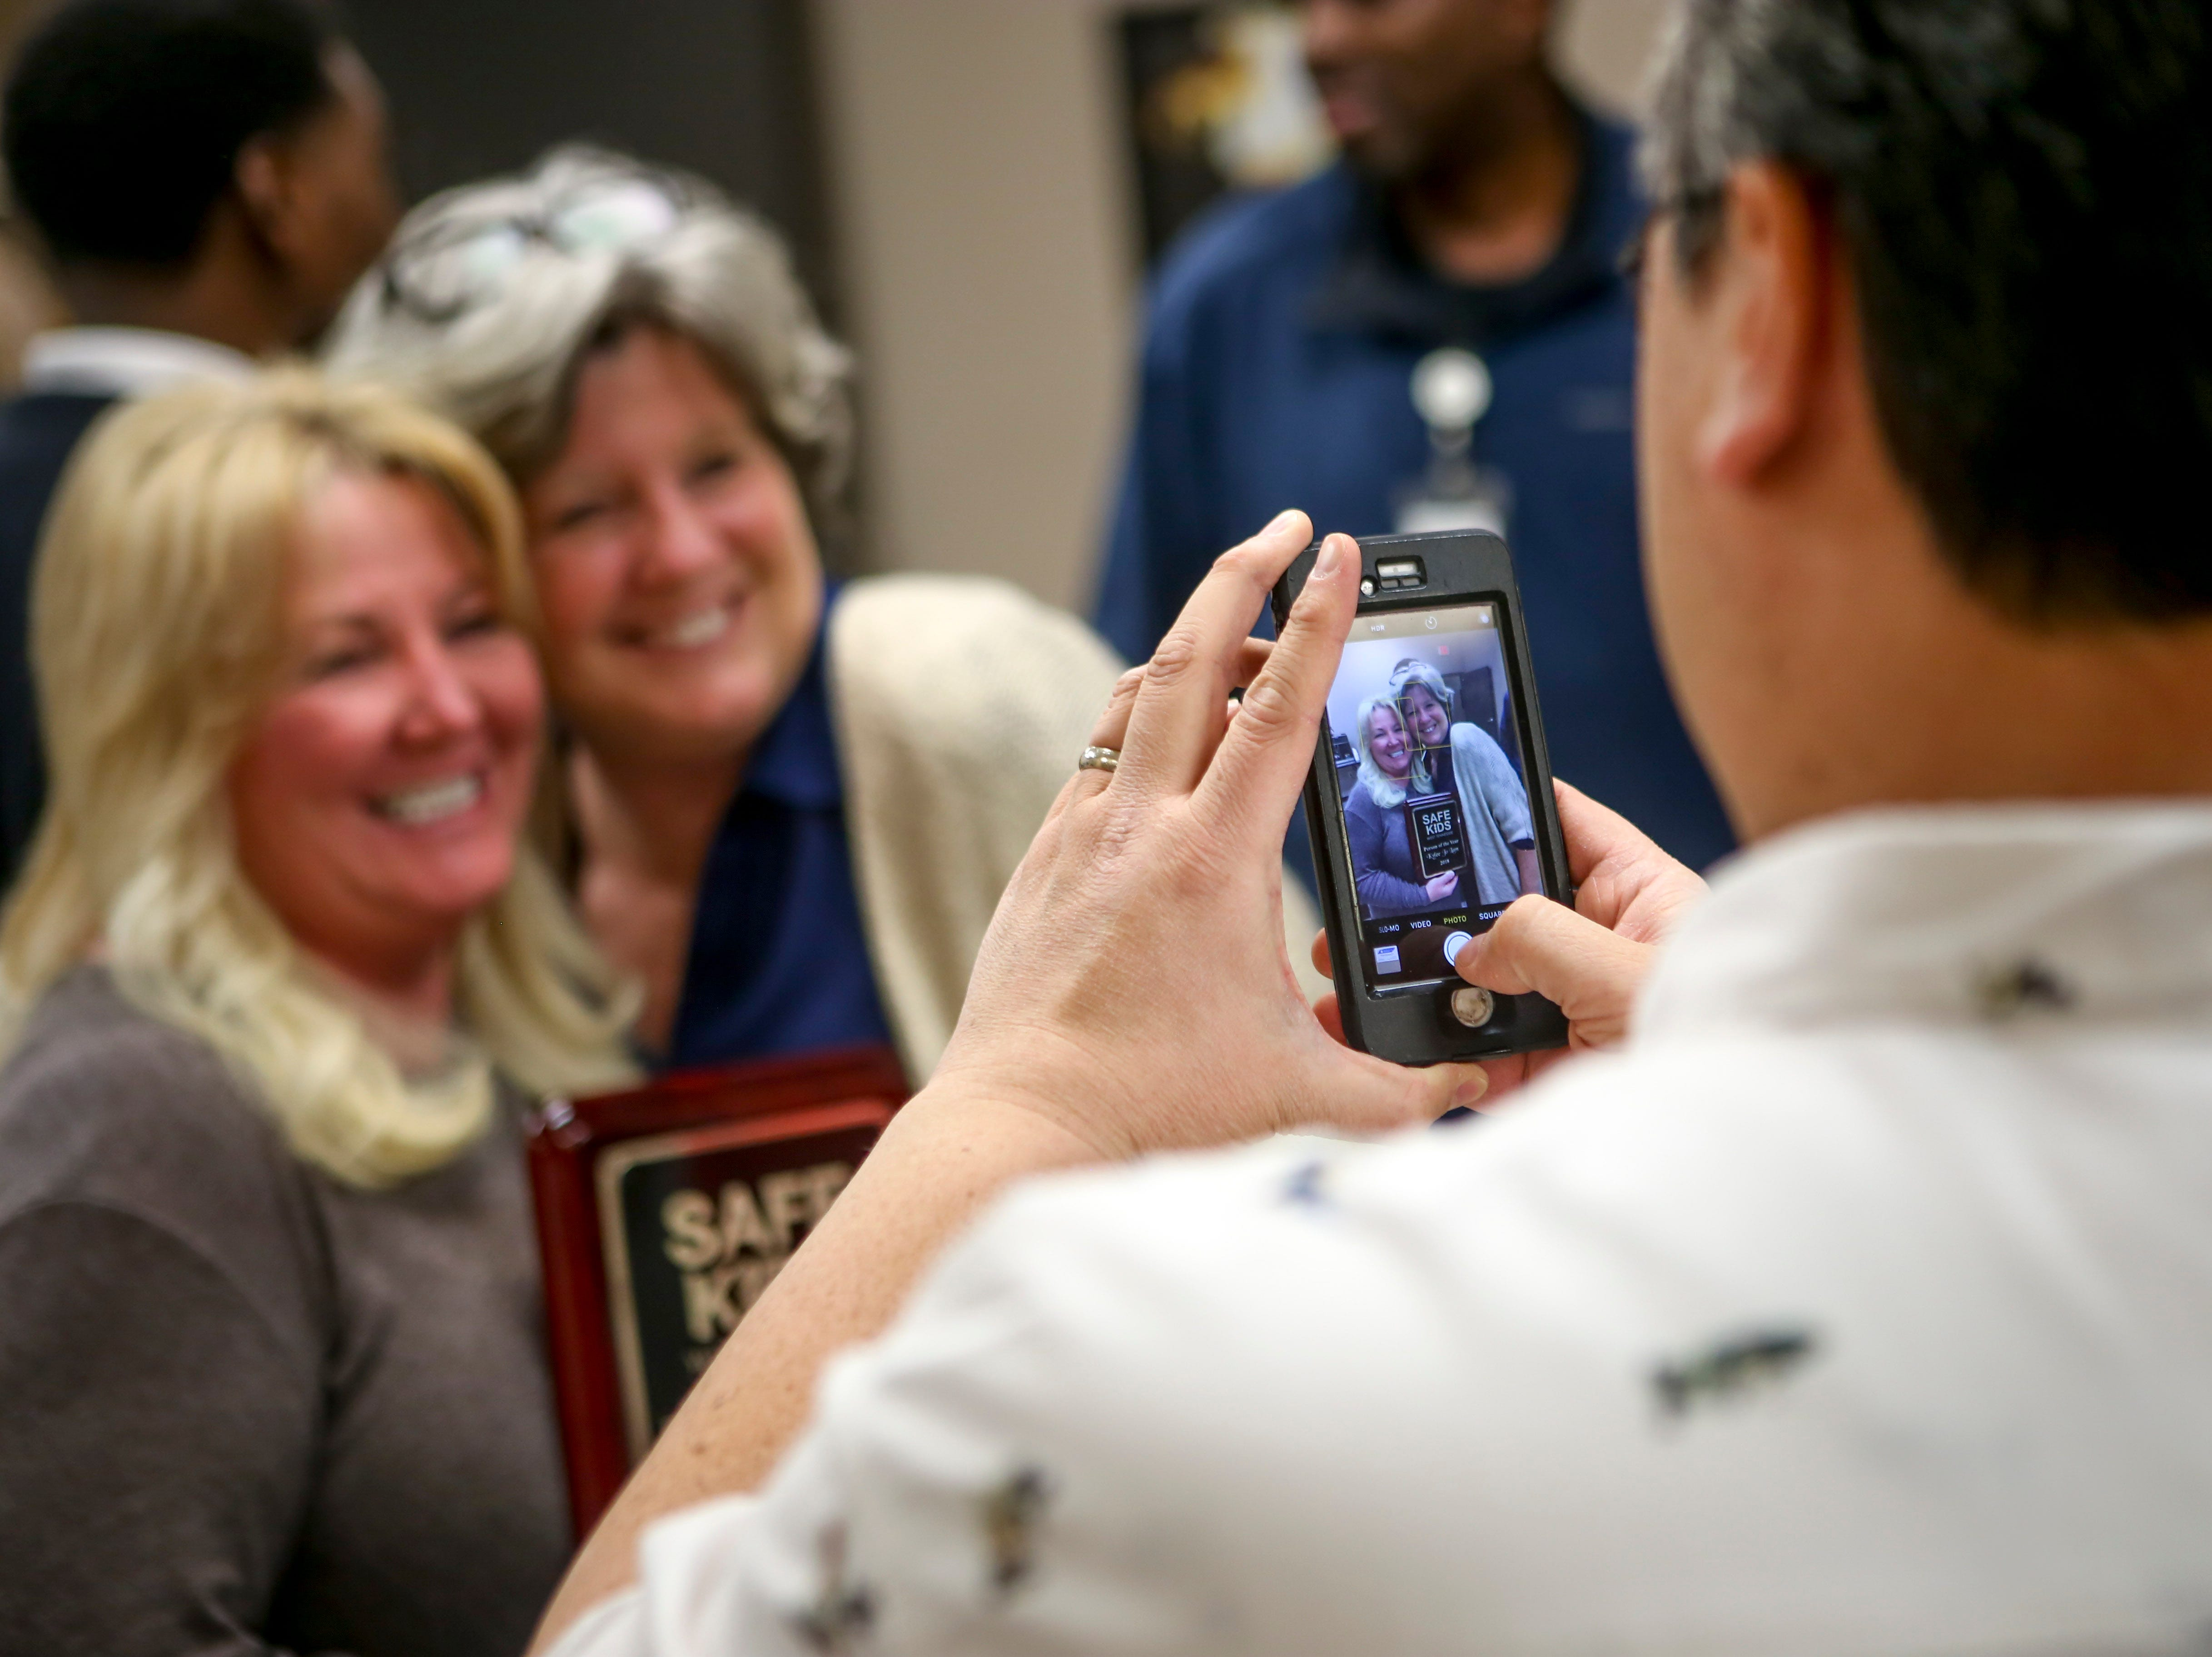 Kylee Jo Lam embraces Diane Rushing for a photo taken by Lam's husband Michael Lam MD after being presented the Safe Kids Person of the Year award at Madison County Fire Department in Jackson, Tenn., on Thursday, Dec. 6, 2018.